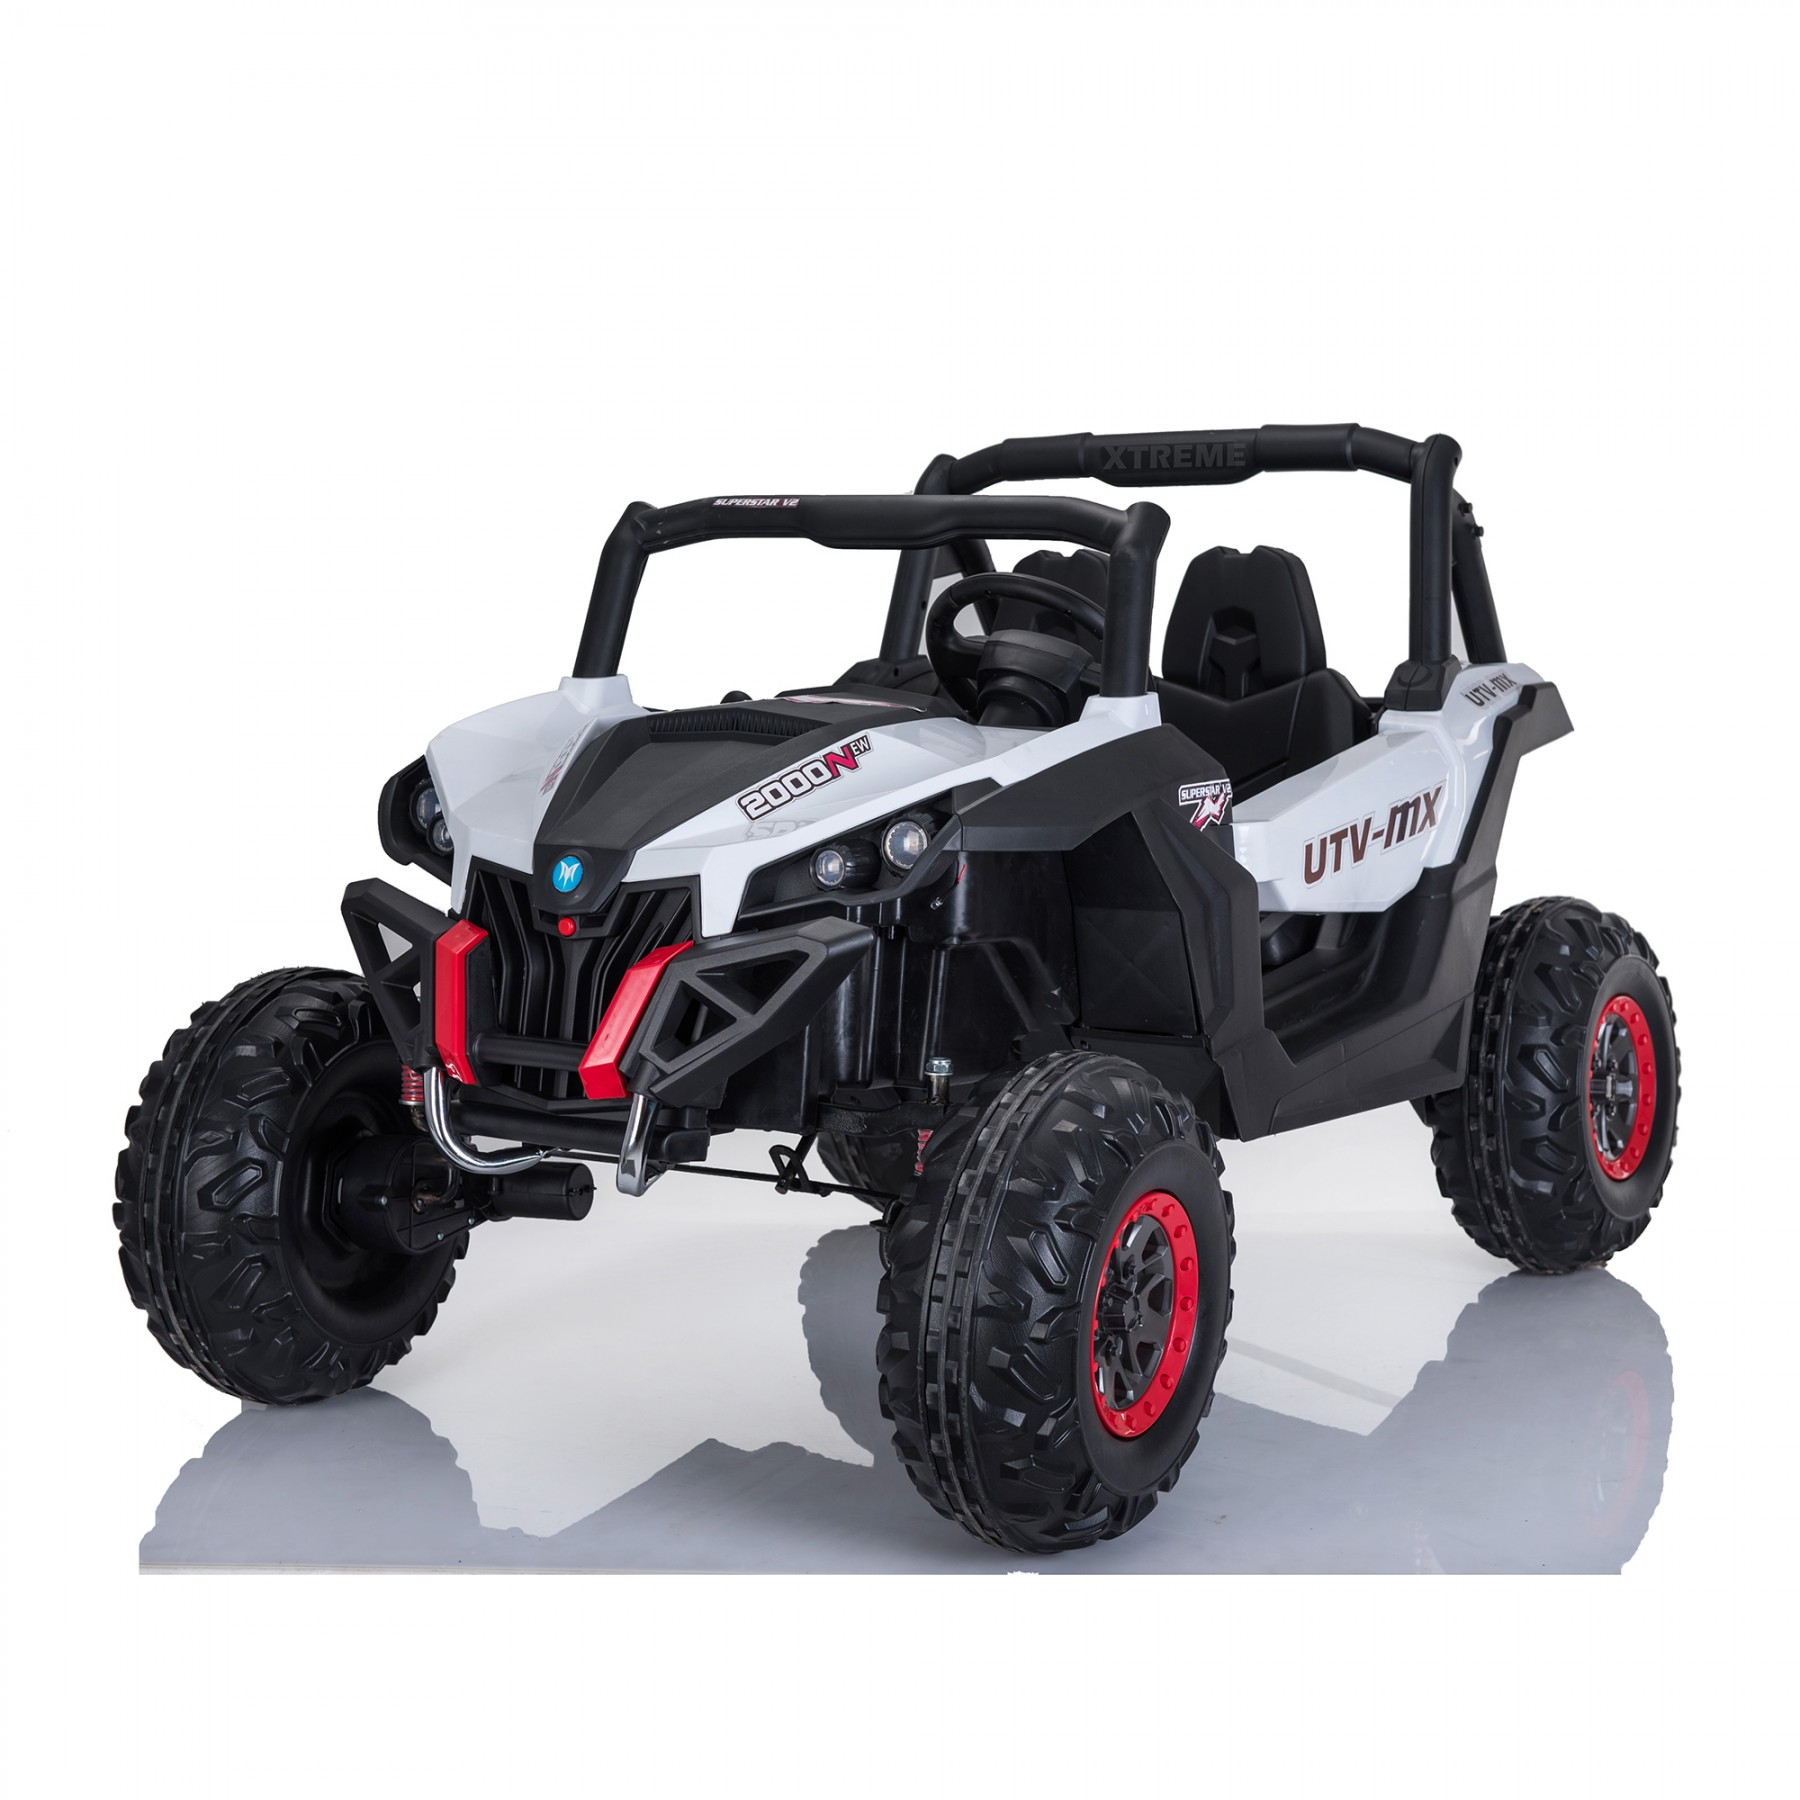 Xtreme 2018 BIG 24v Ride on 4x4 Jeep White